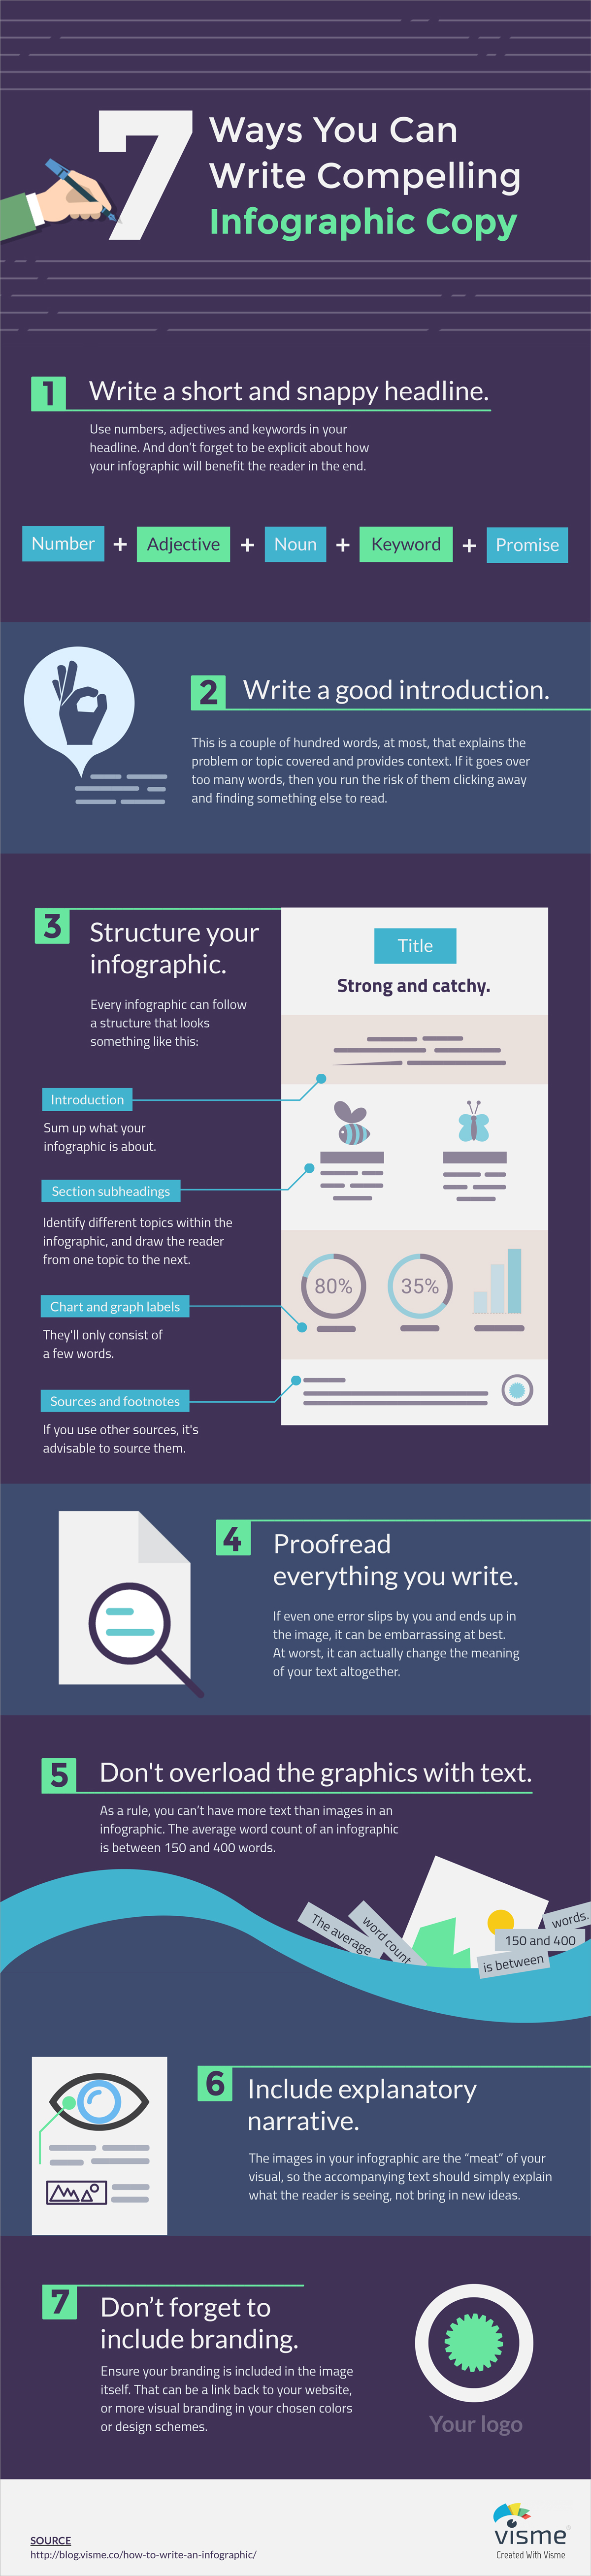 7-Steps-to-Writing-Compelling-Infographic-how to write an infographic